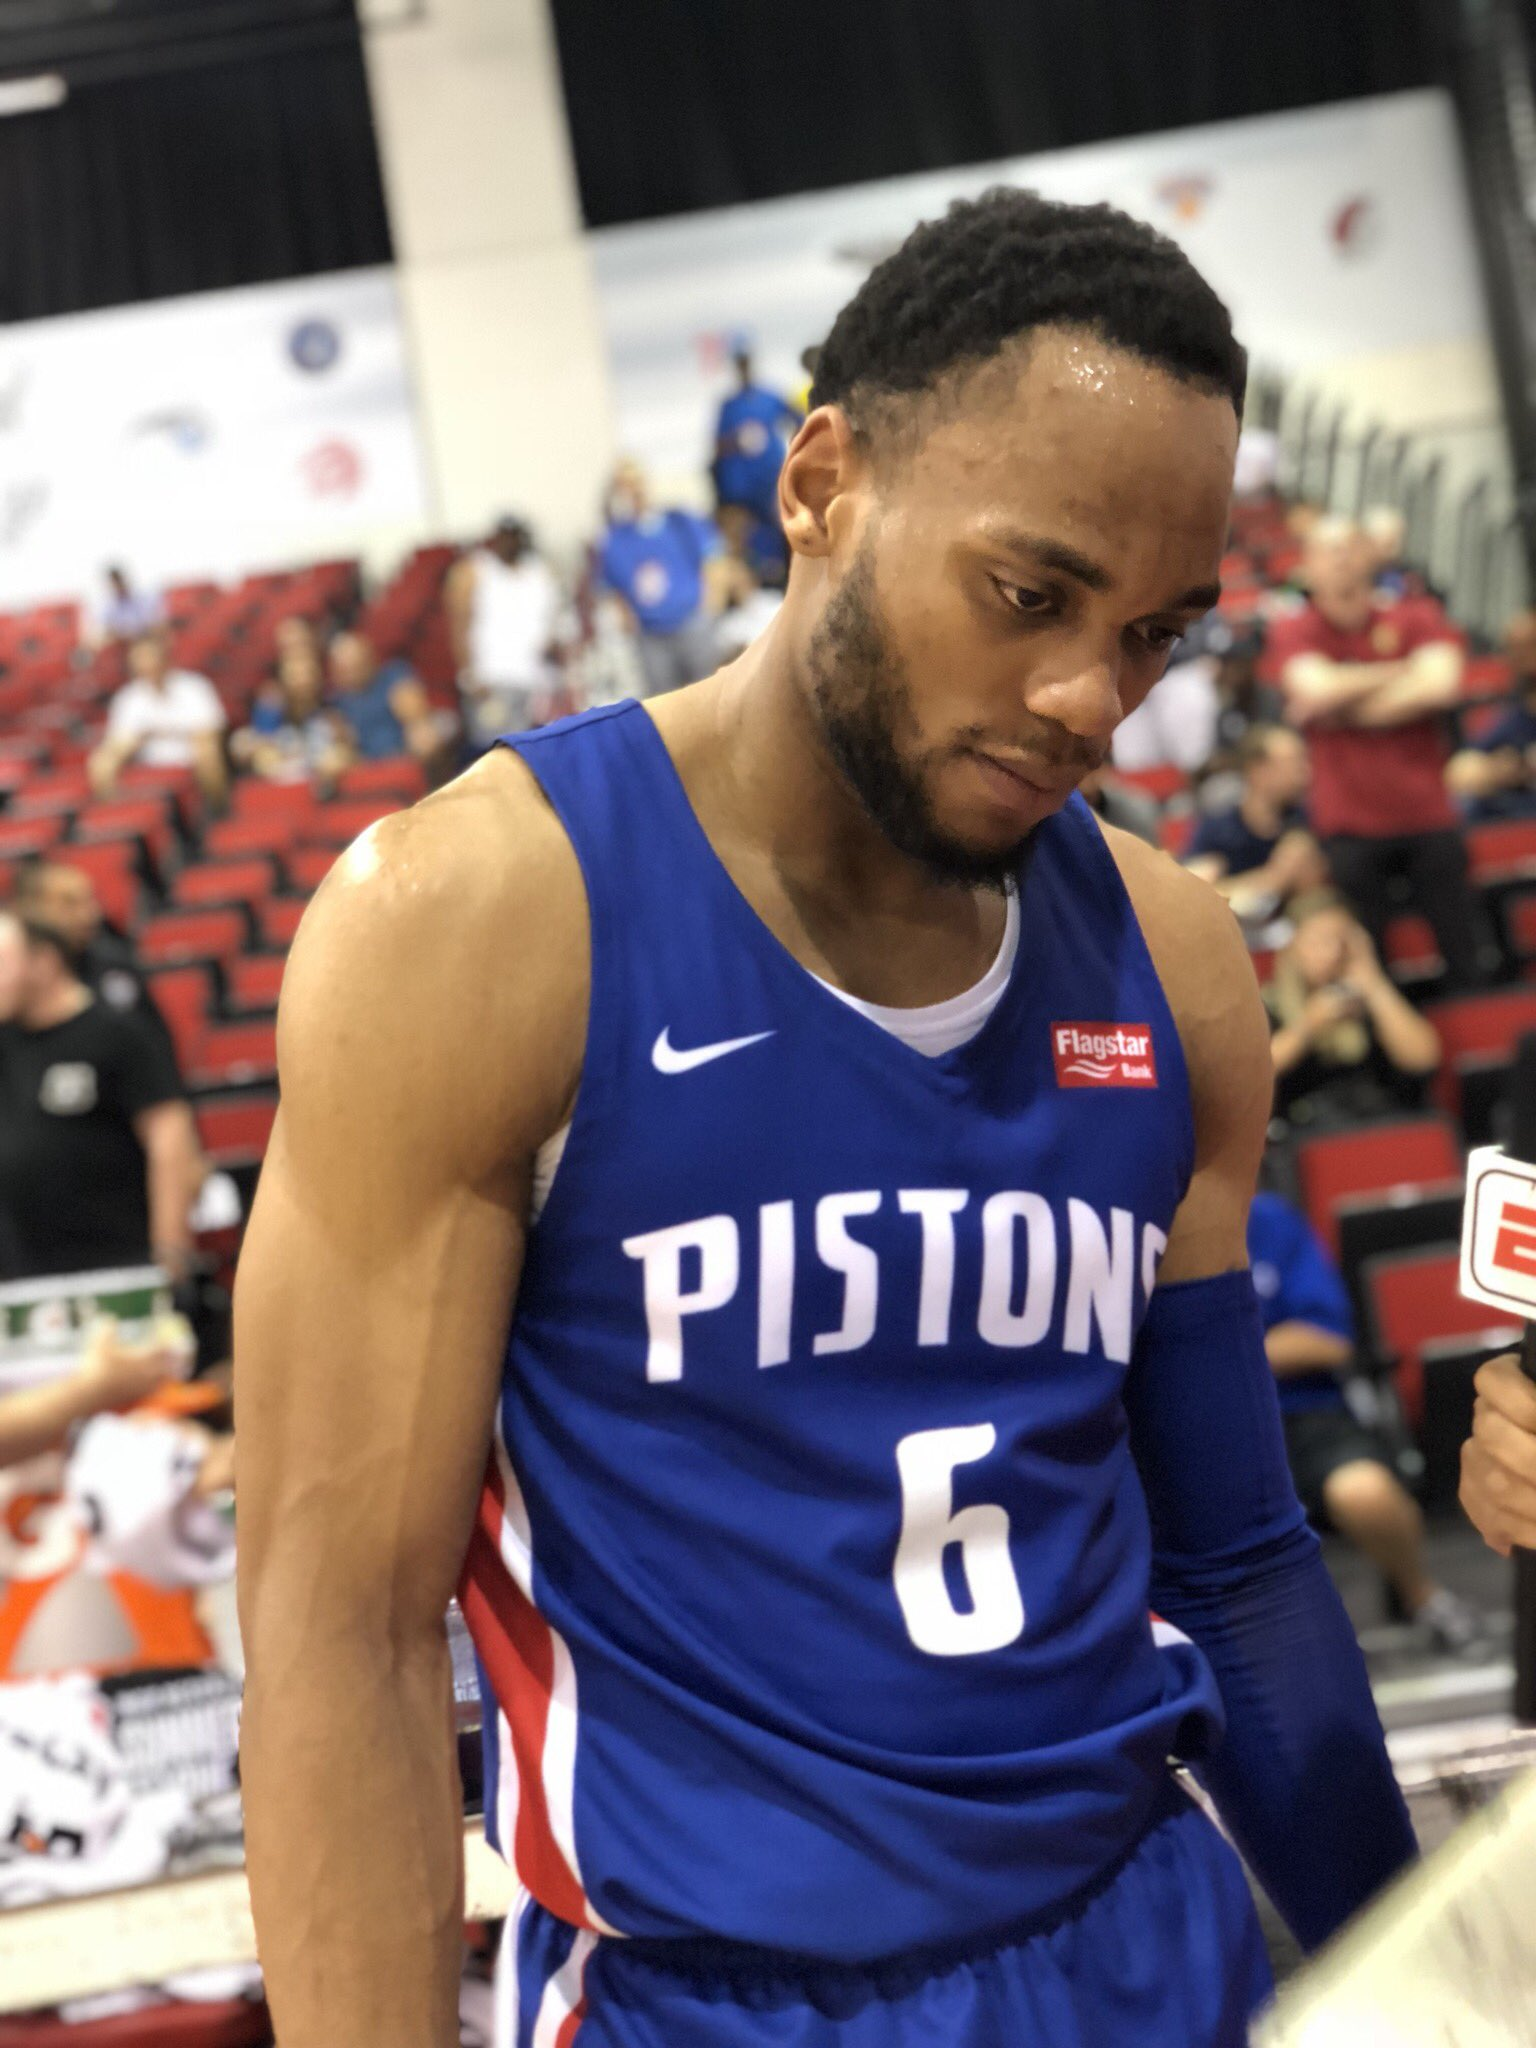 The @DetroitPistons advance in the #NBASummer playoffs behind 15p, 11r, 6a & 5s from @BruceBrown11! https://t.co/Hk4uNlnfIh